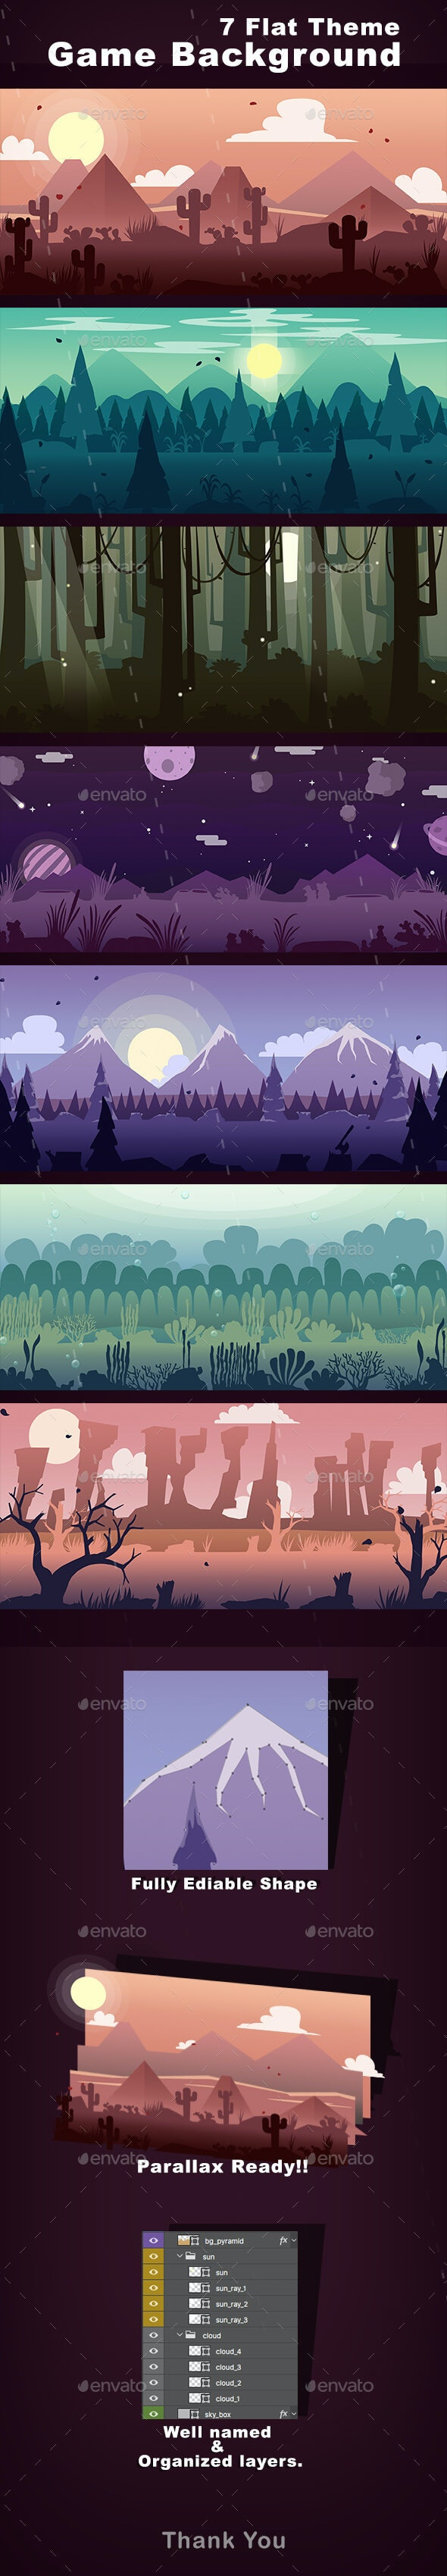 Game Background Flat Theme - Backgrounds Game Assets